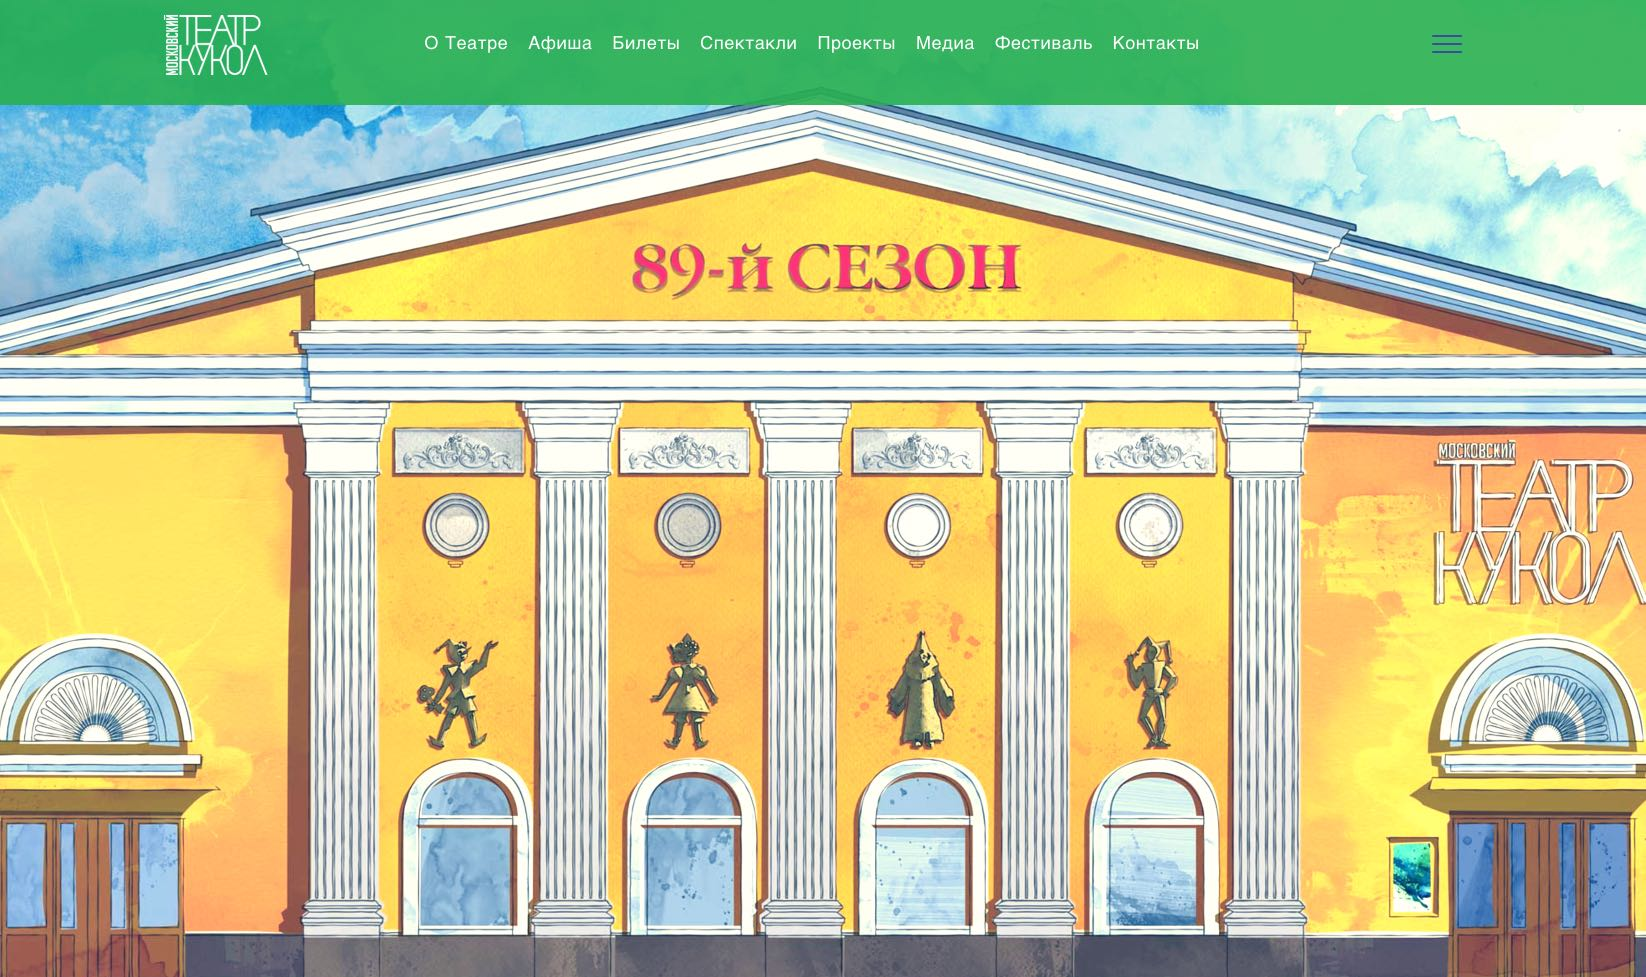 Moscow puppet theater